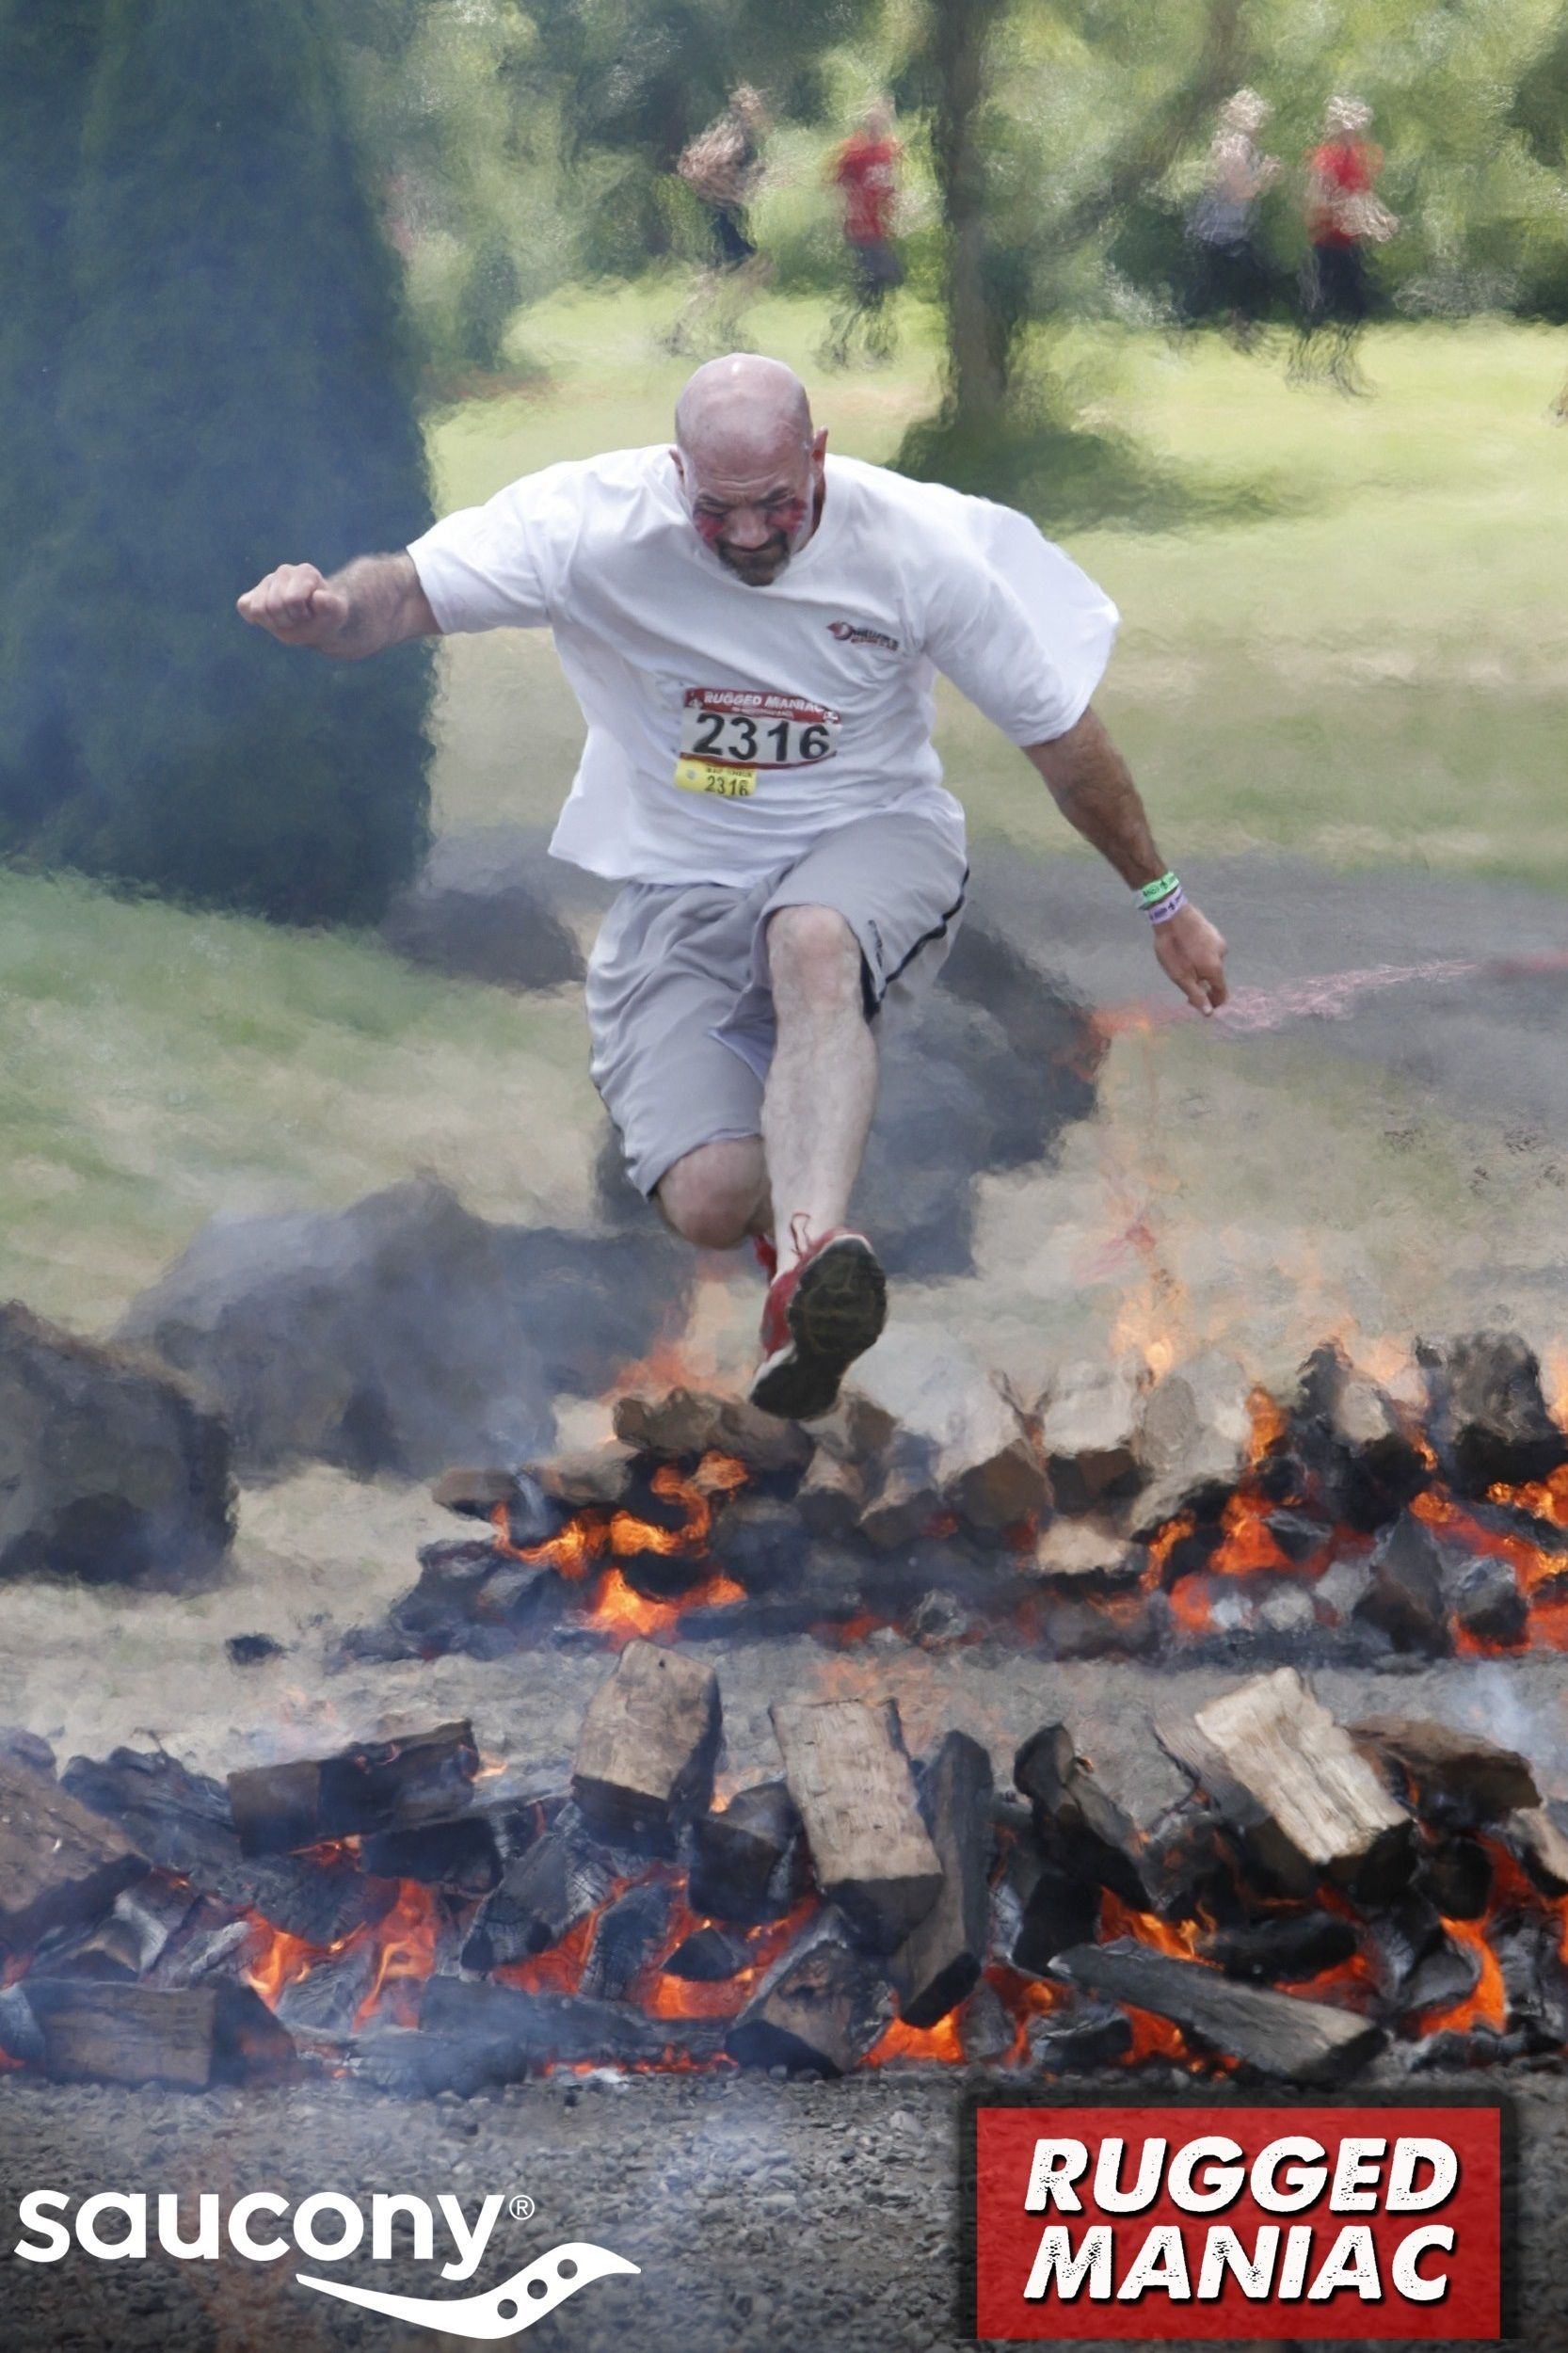 James' official Rugged Maniac Race photo Duct cleaning